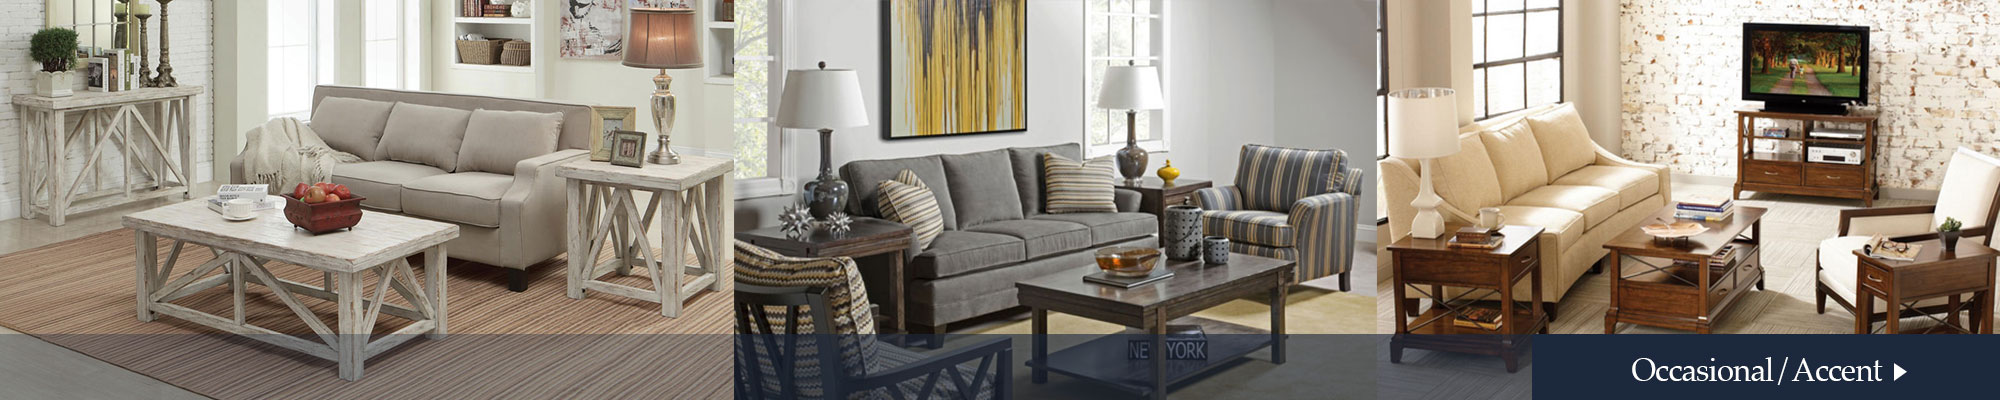 Furniture Store Cary NC